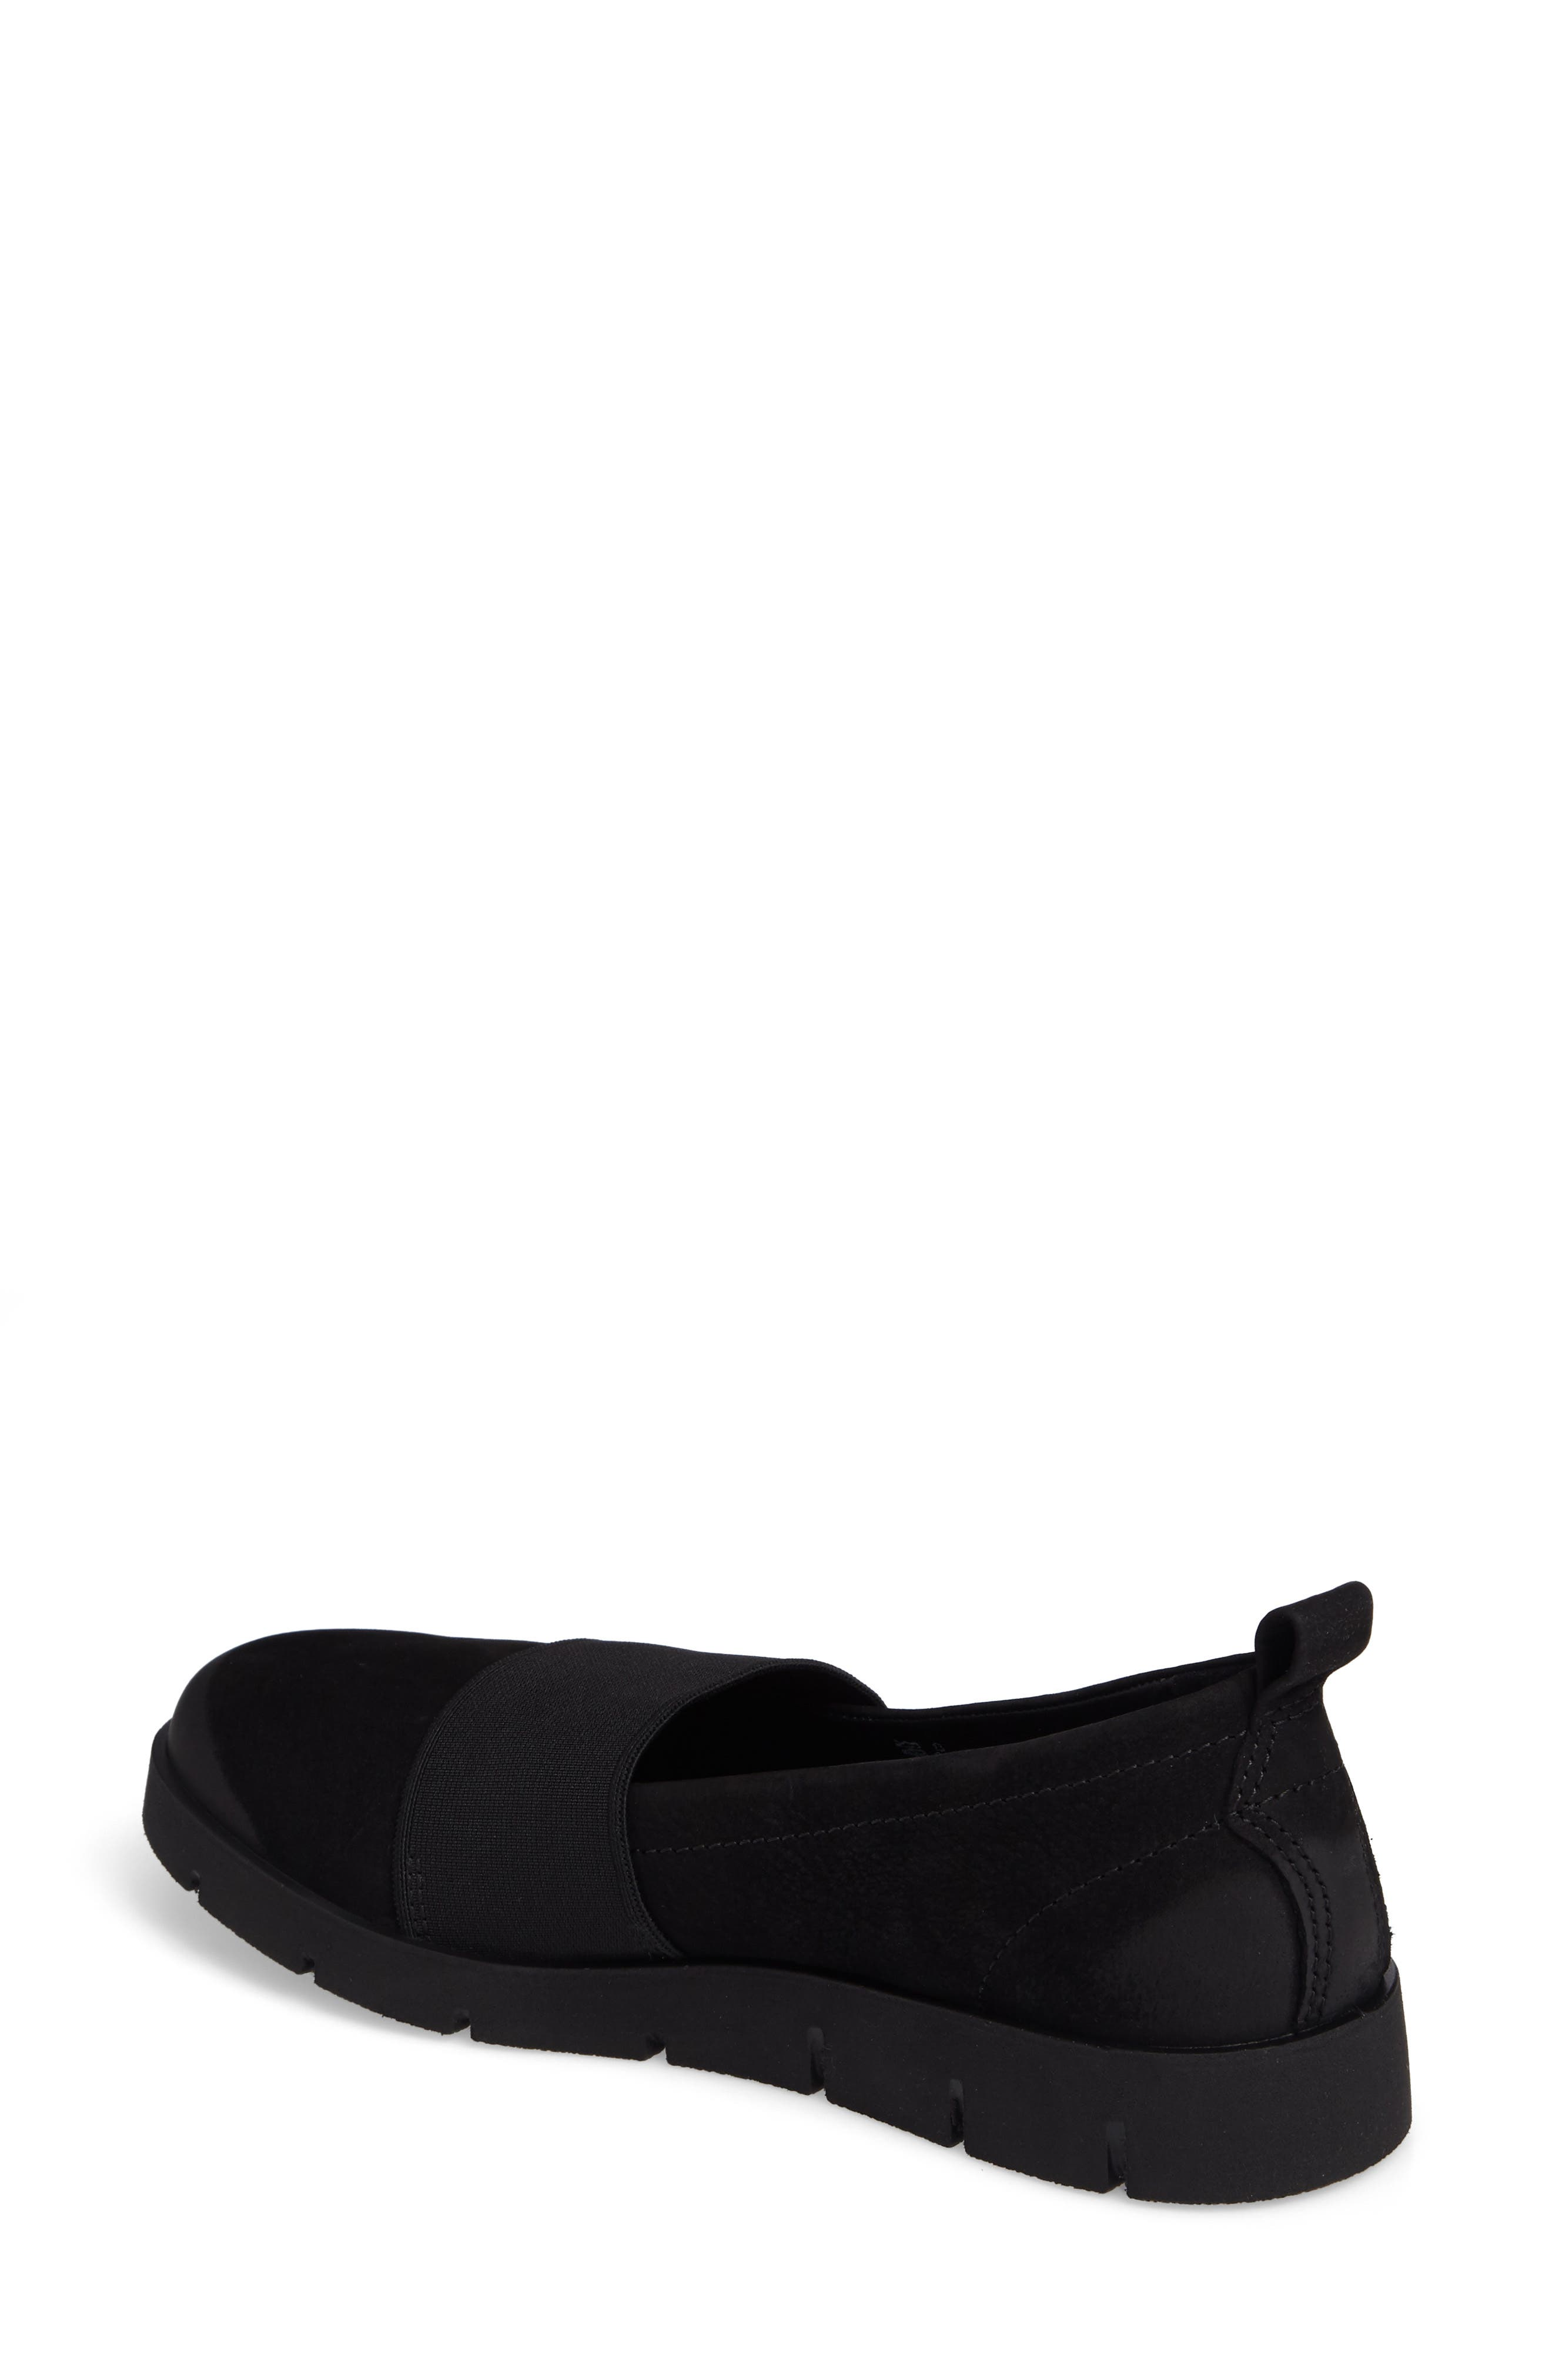 Bella Slip-On Sneaker,                             Alternate thumbnail 2, color,                             001